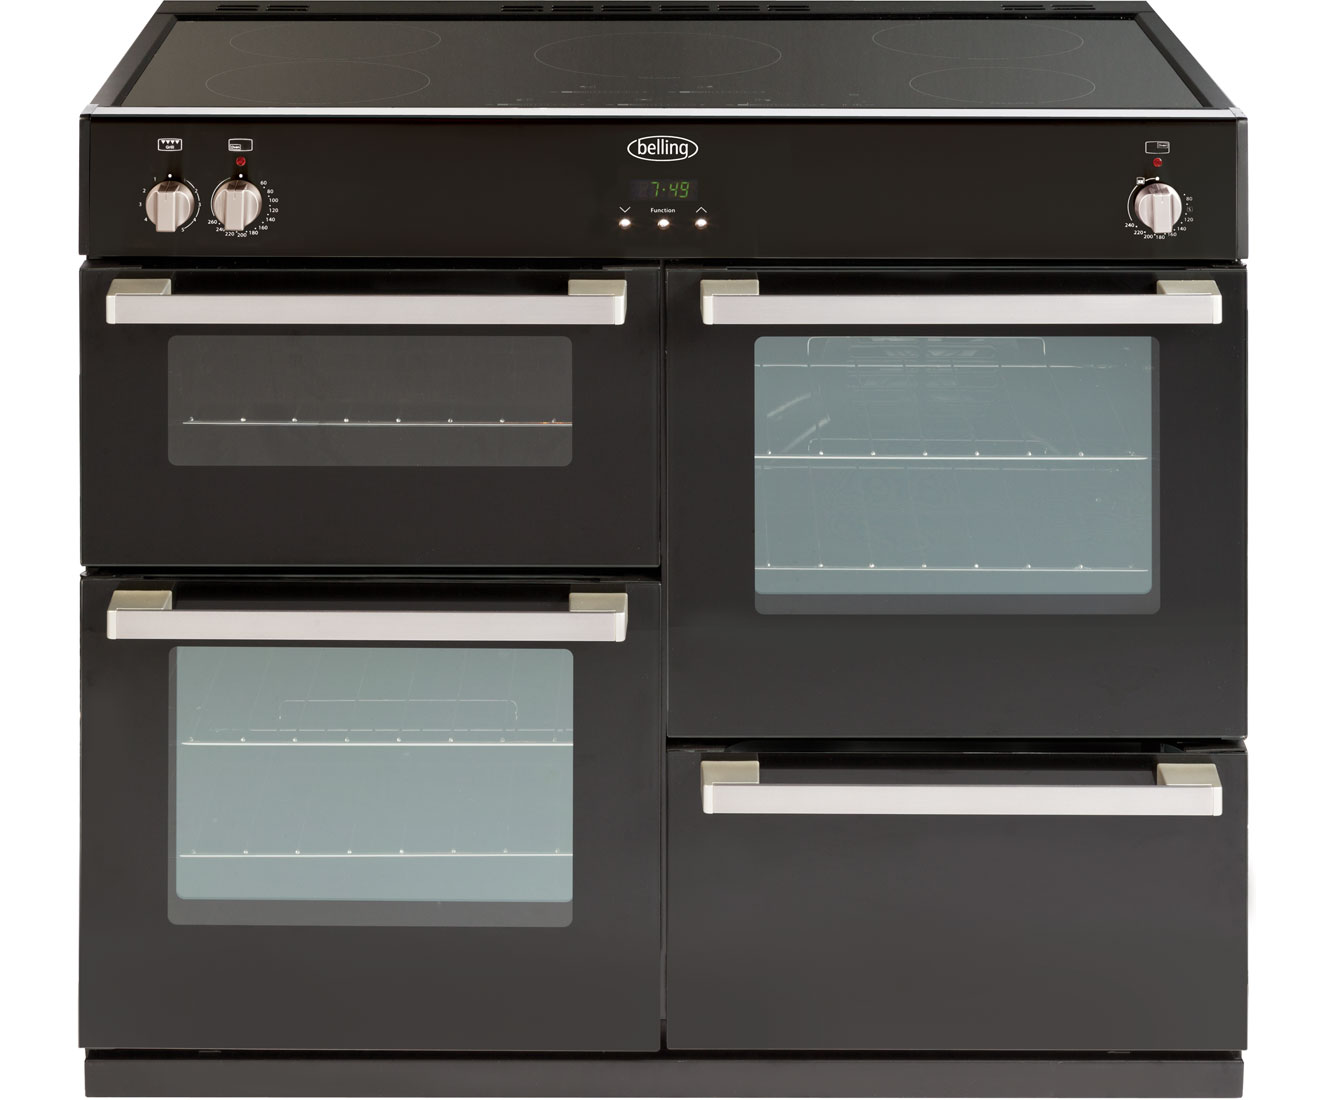 Belling DB4100Ei 100cm Electric Range Cooker with Induction Hob - Black